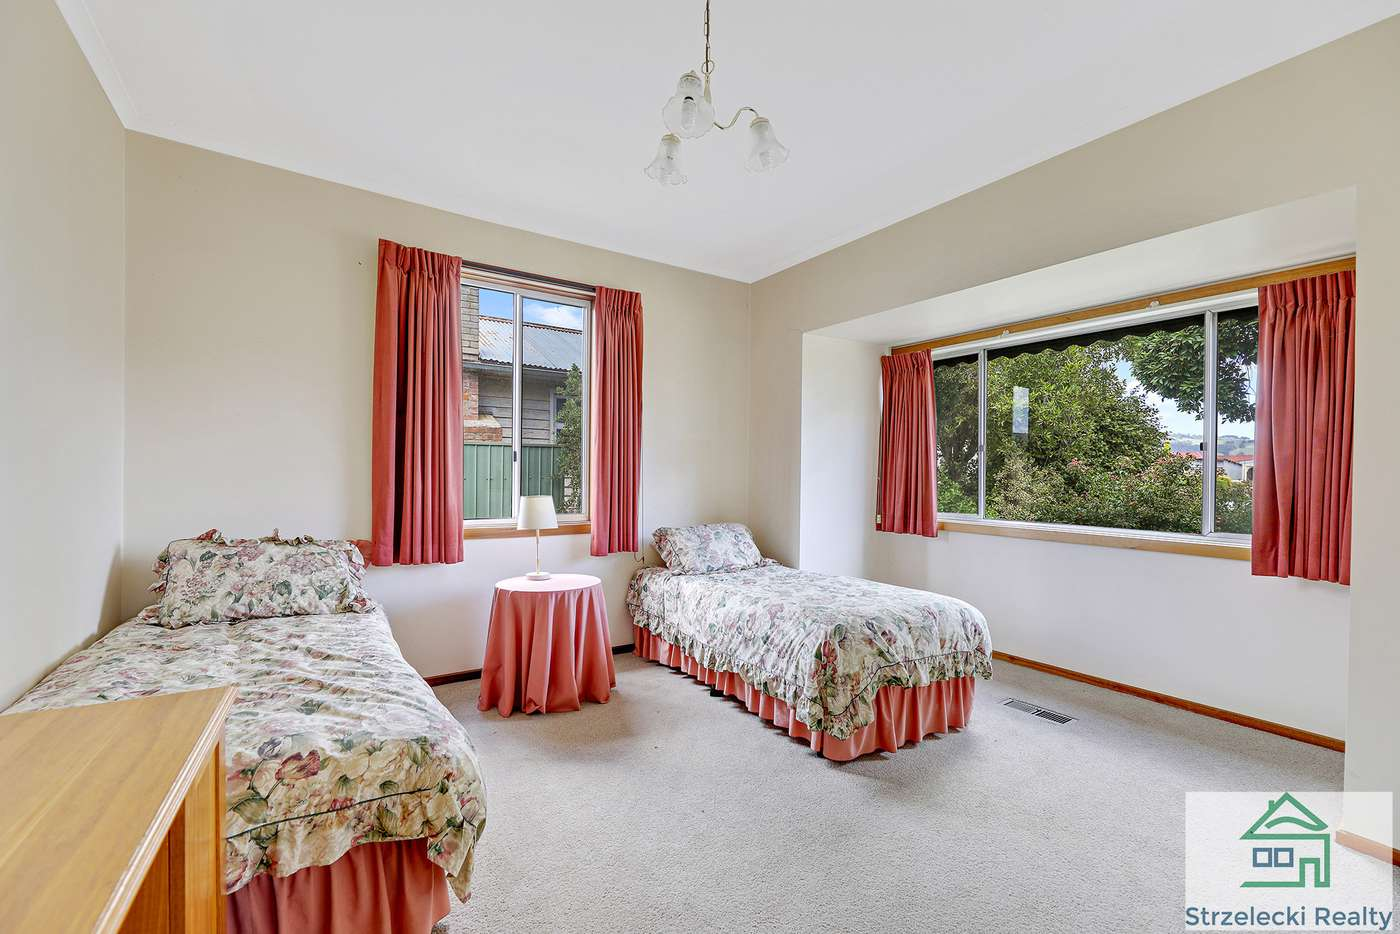 Seventh view of Homely house listing, 48 Ashby St, Trafalgar VIC 3824